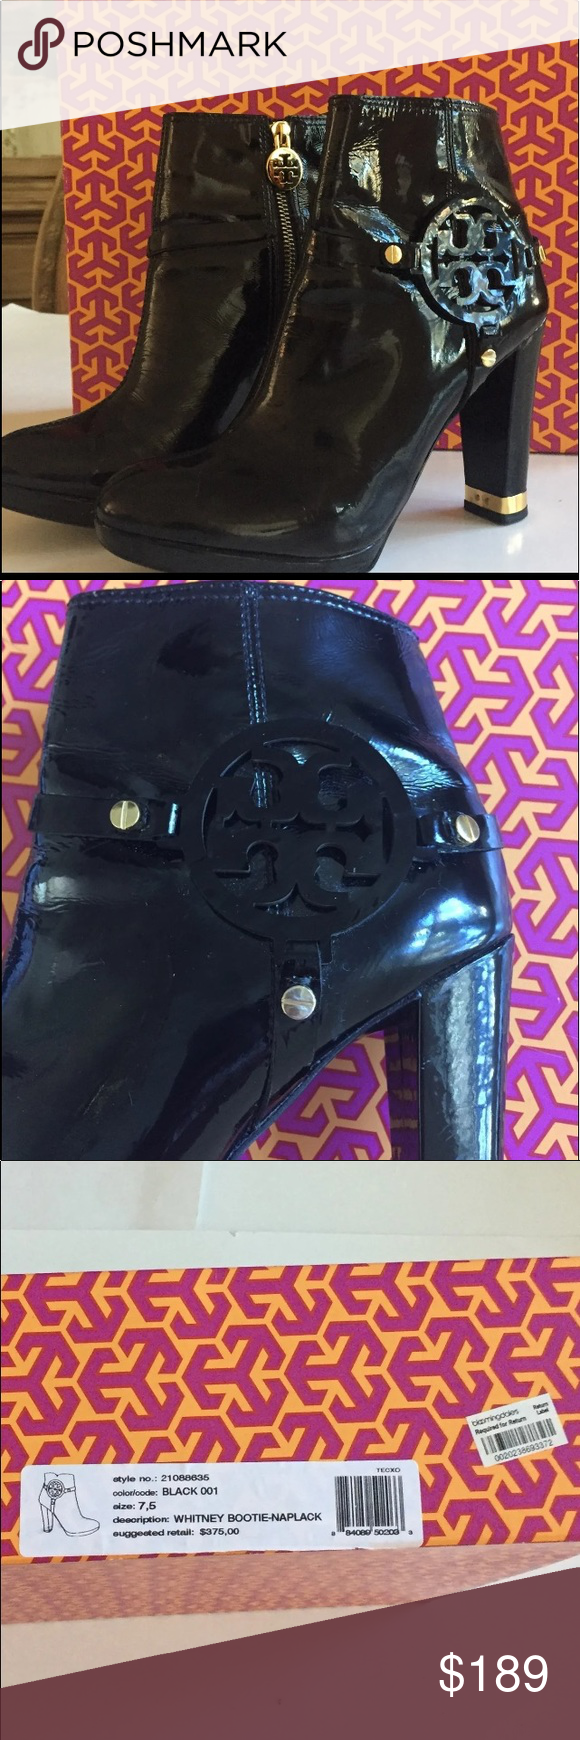 267319520970 Tory Burch Whitney Bootie-7.5 From Bloomingdales paid 375. Plus tax. As you